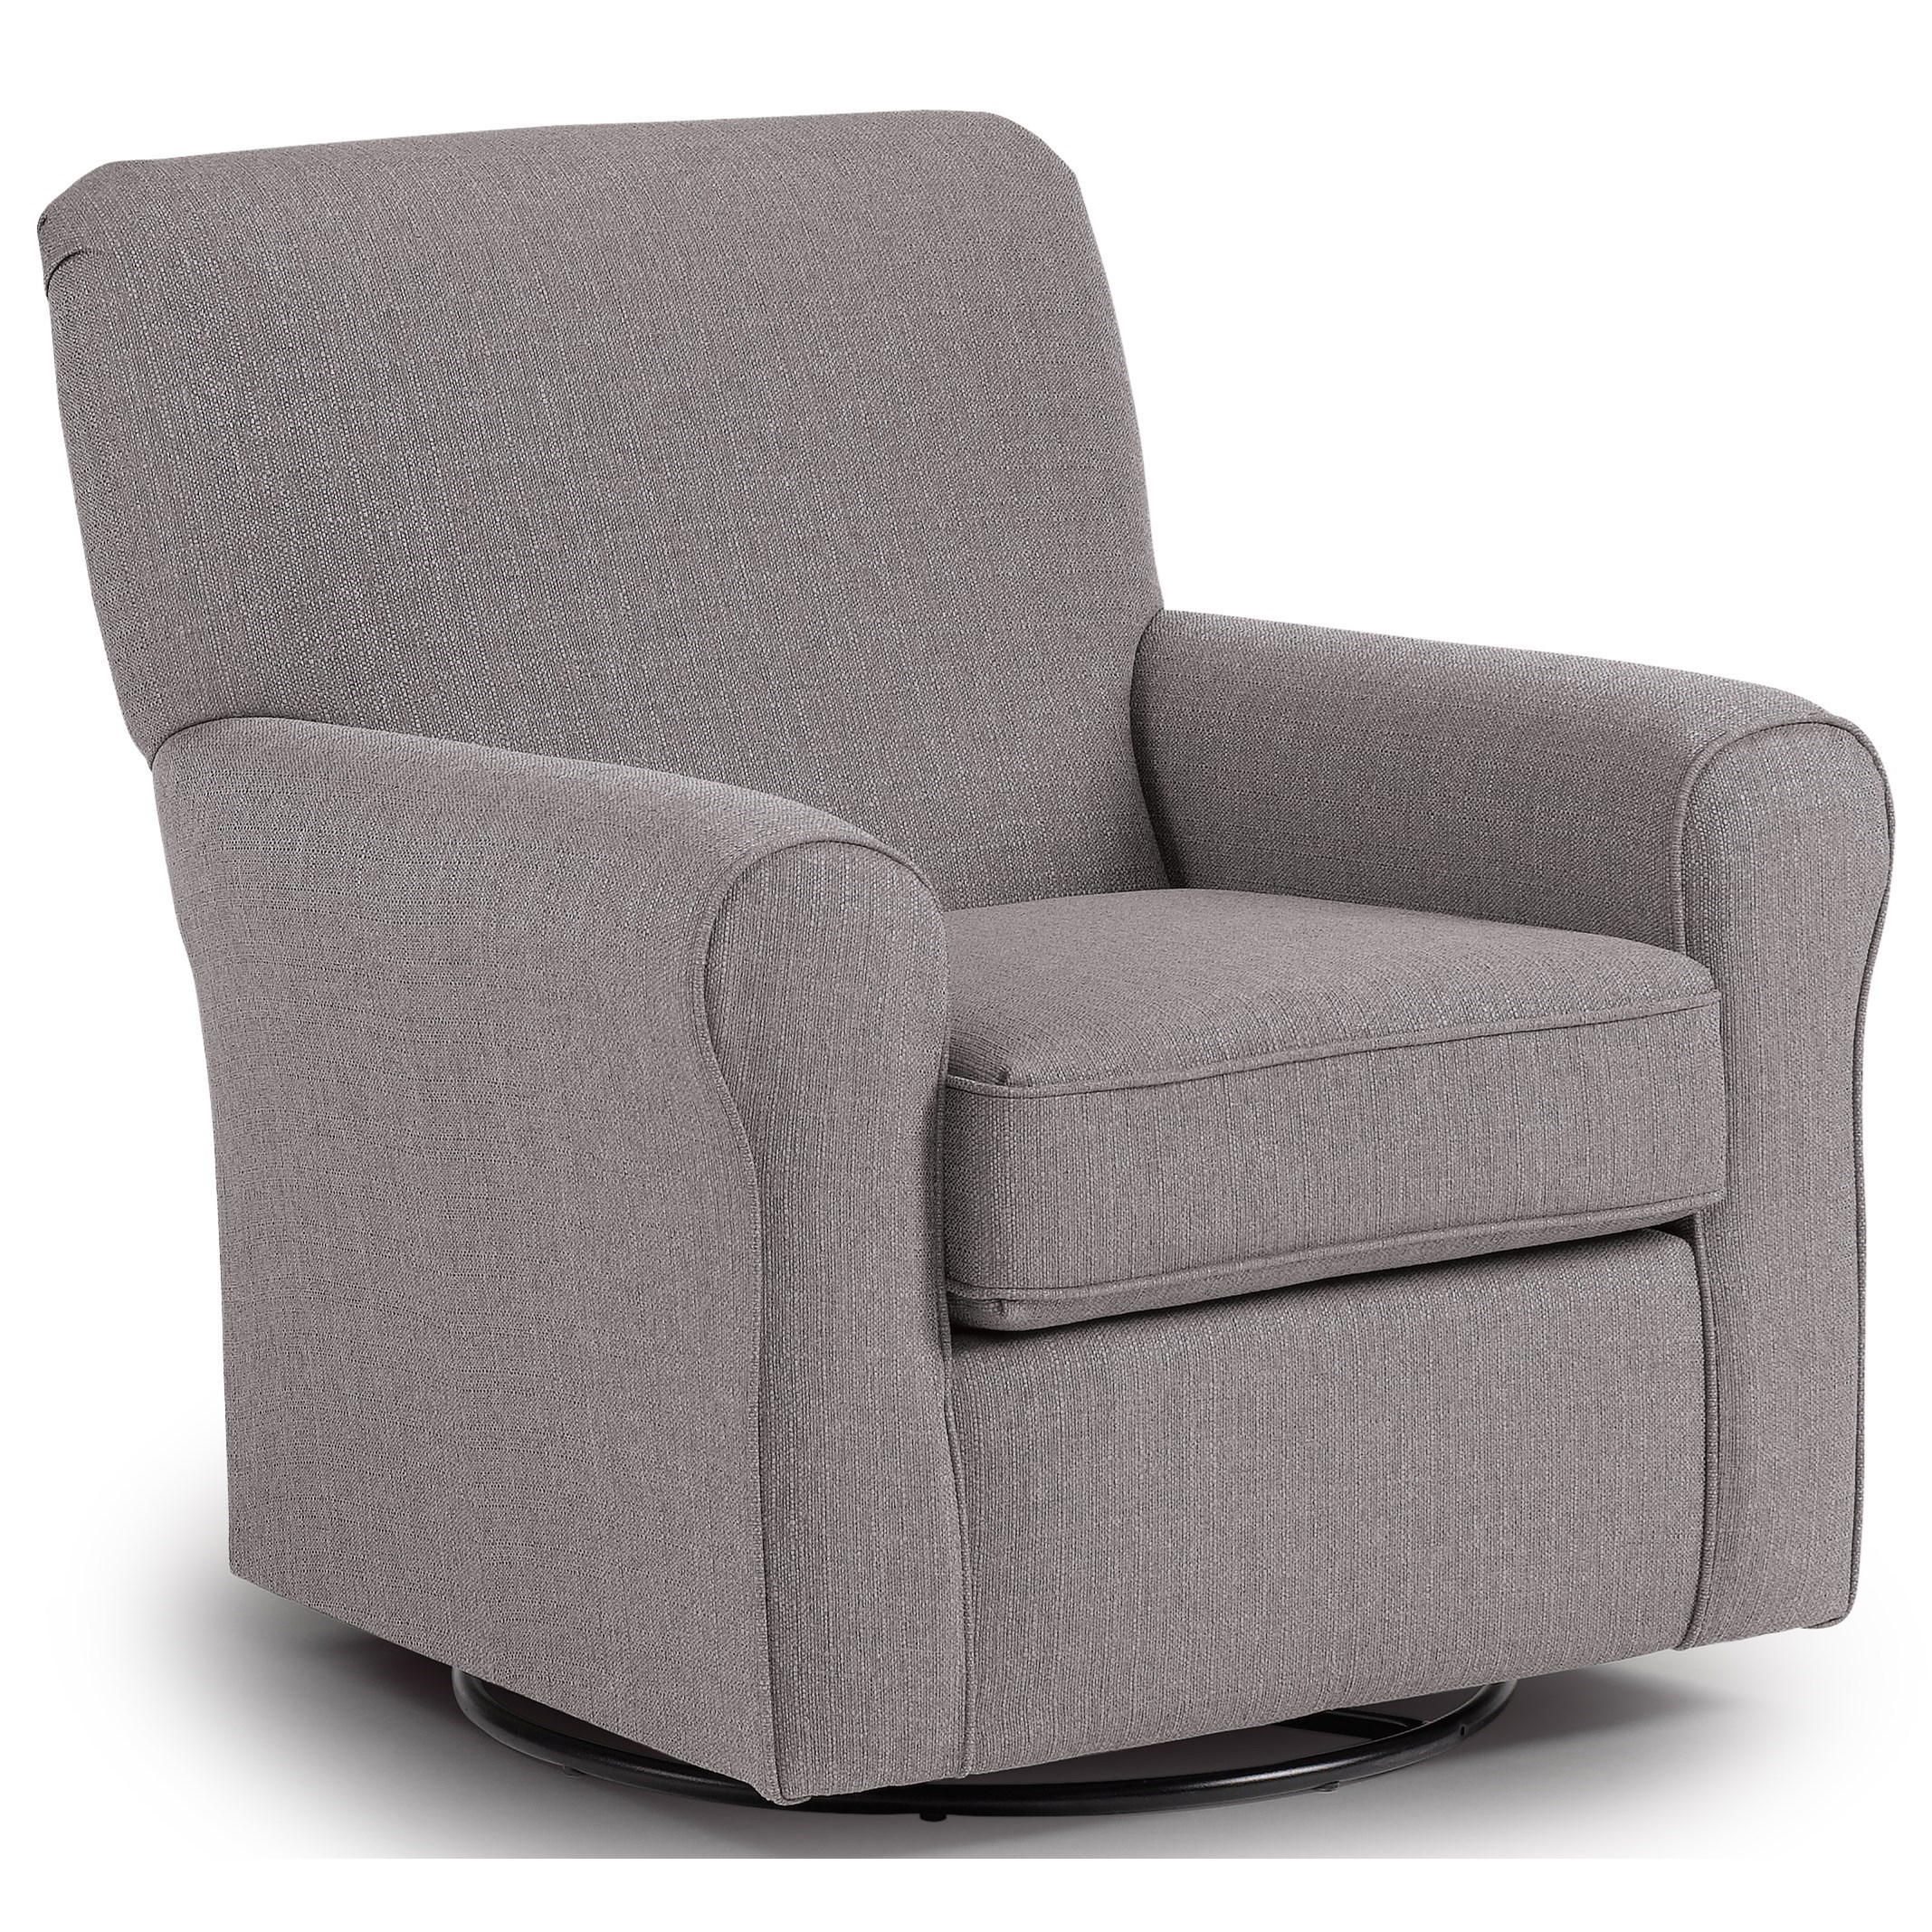 Swivel Glide Chairs Hagen Swivel Glide by Best Home Furnishings at Bullard Furniture